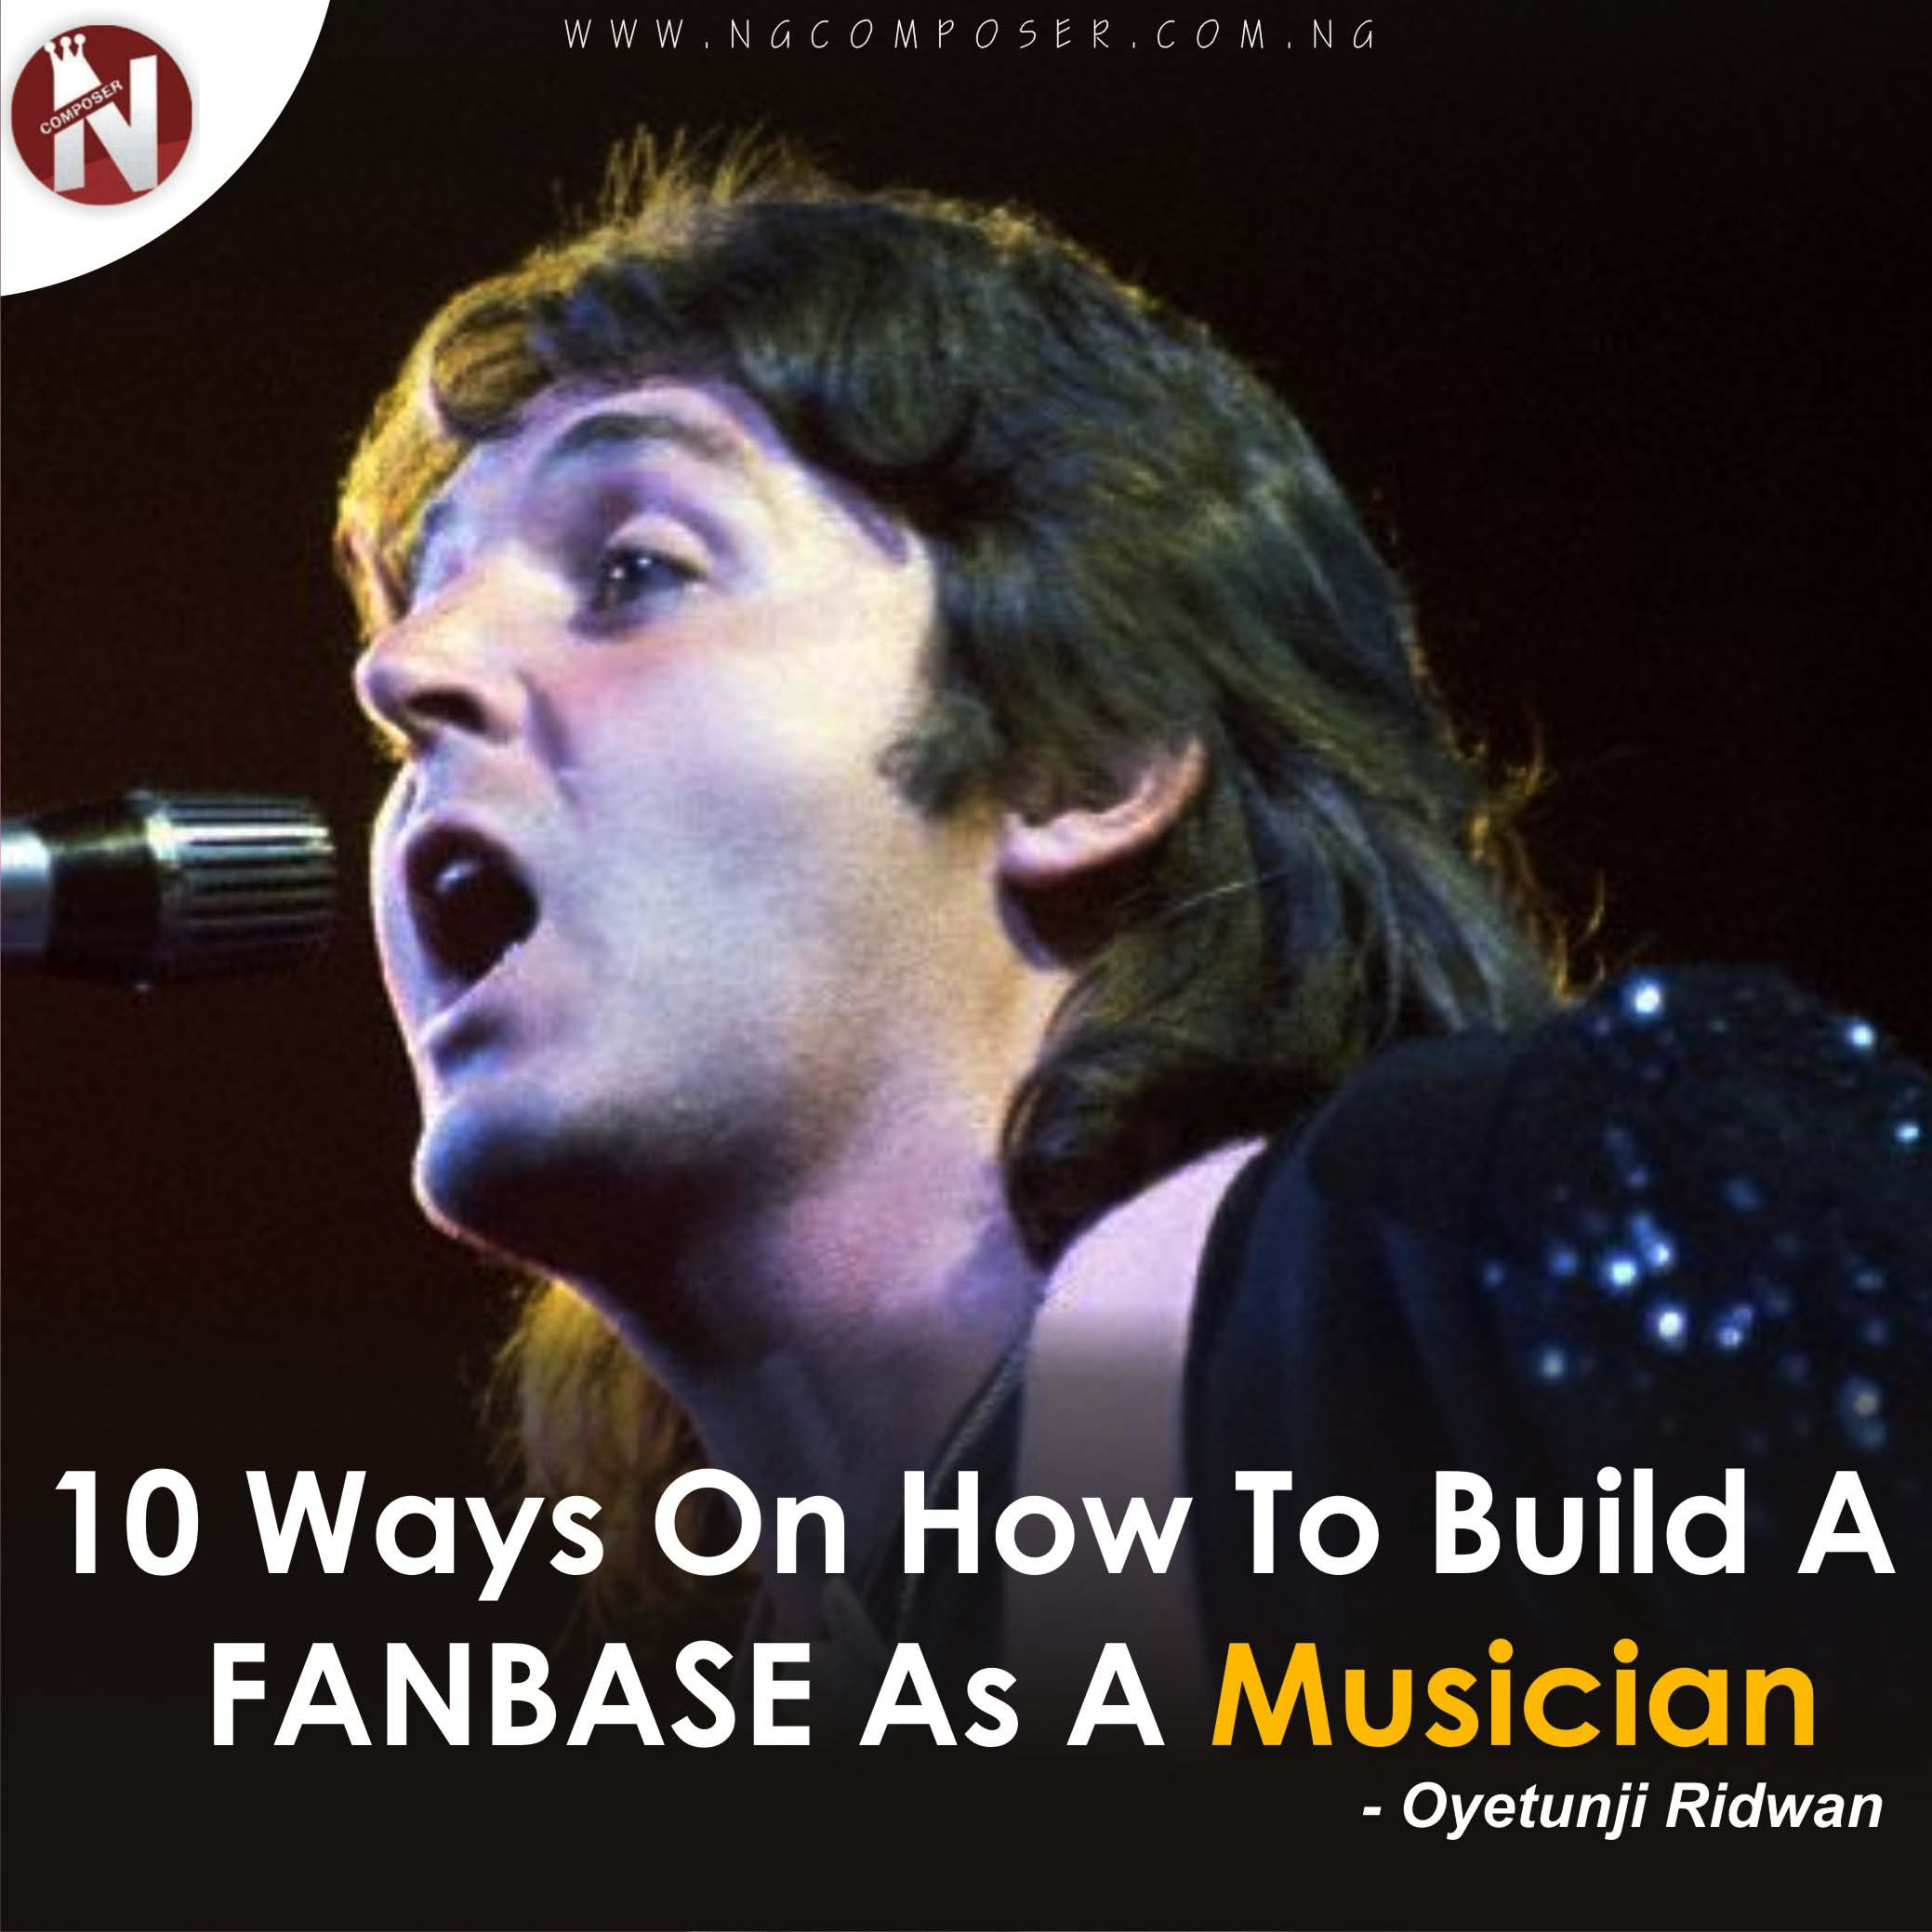 How To Build A FANBASE As A Musician